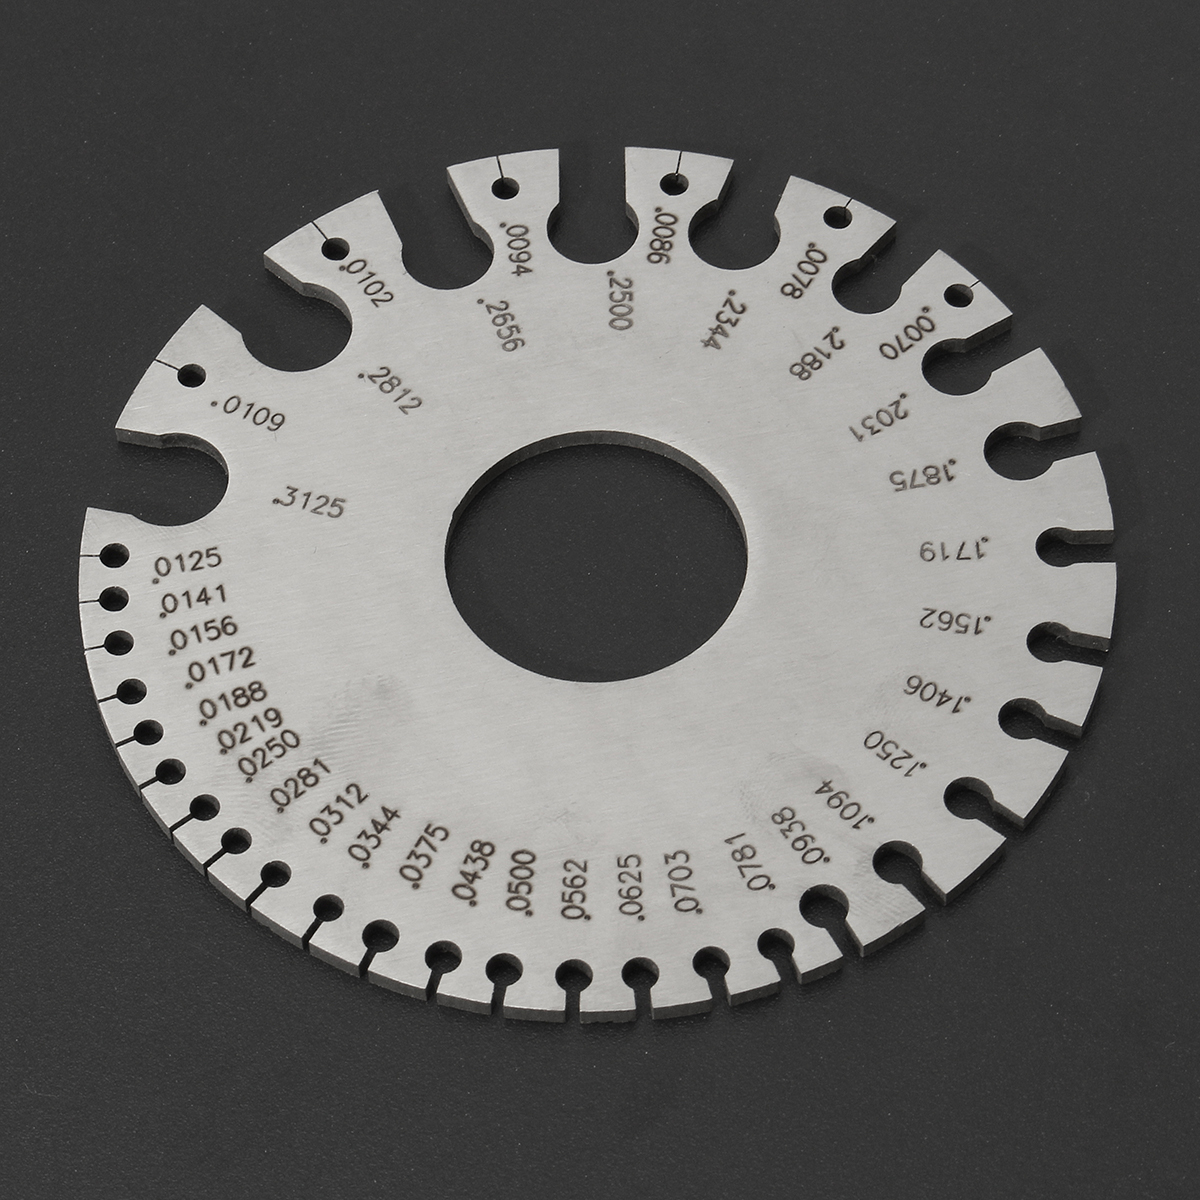 Wire Thickness Measuring 2 Sides Round Wire Thickness Measurer Tester Ruler Gauge Diameter Tool